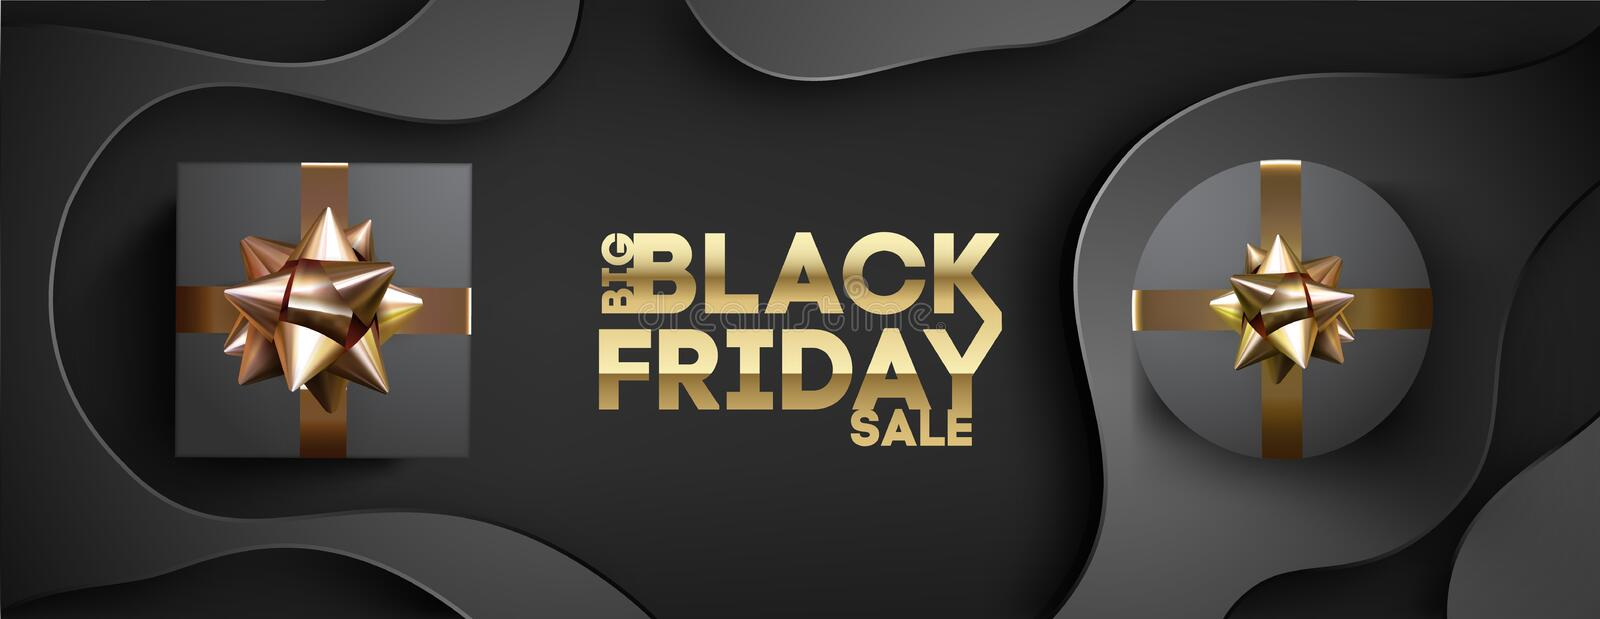 Black friday banner with black giftbox decorated with golden ribbon on black background. royalty free stock photo